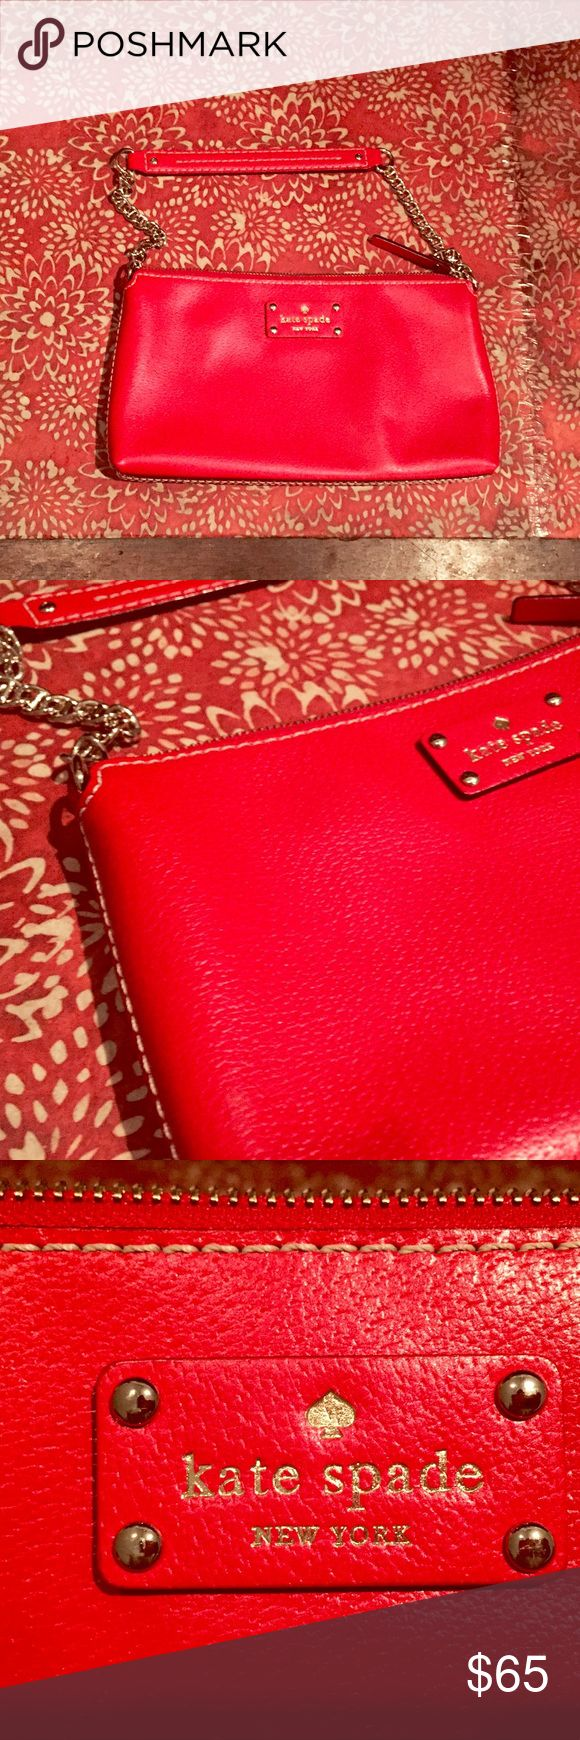 """Kate Spade Red Wellesley Shoulder Bag ❣️LIKE NEW! ❣️bright red Kate Spade shoulder bag with a silver chain and a gold polka dot interior !   just a little bigger than a wristlet but not huge -- 11"""" wide, 6"""" high, strap drop of 8.5"""". Genuine leather, and in beautiful condition: only worn once. Even comes with original dust bag!❣️ . . . . . #katespade #purse #red #designer #bag #leather kate spade Bags Shoulder Bags"""